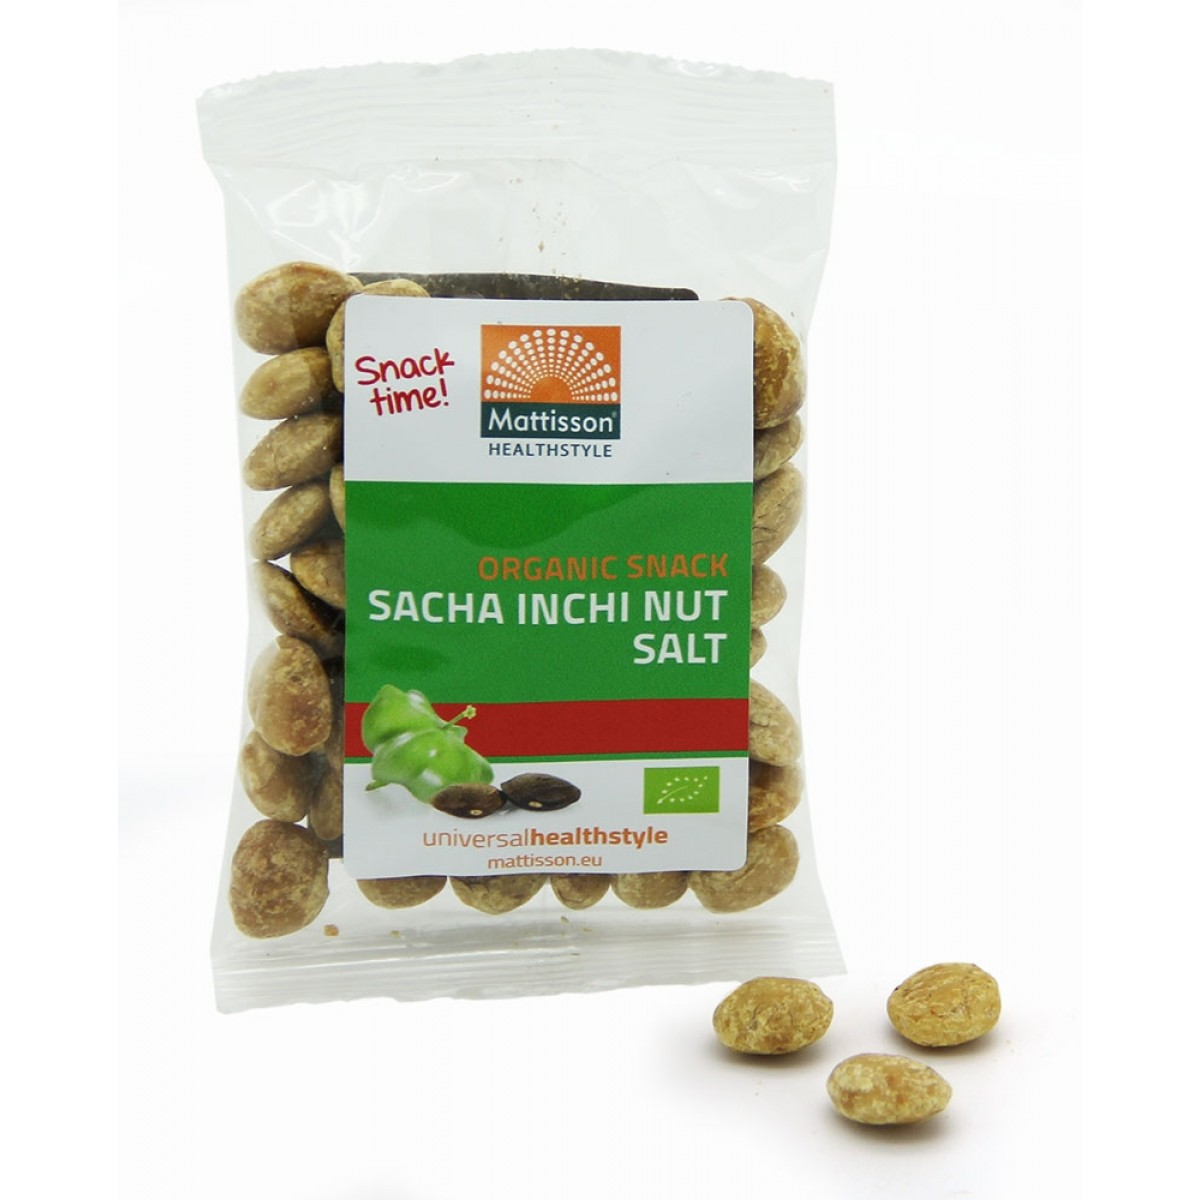 Bio Sacha Inchi Nut & Salt Snack